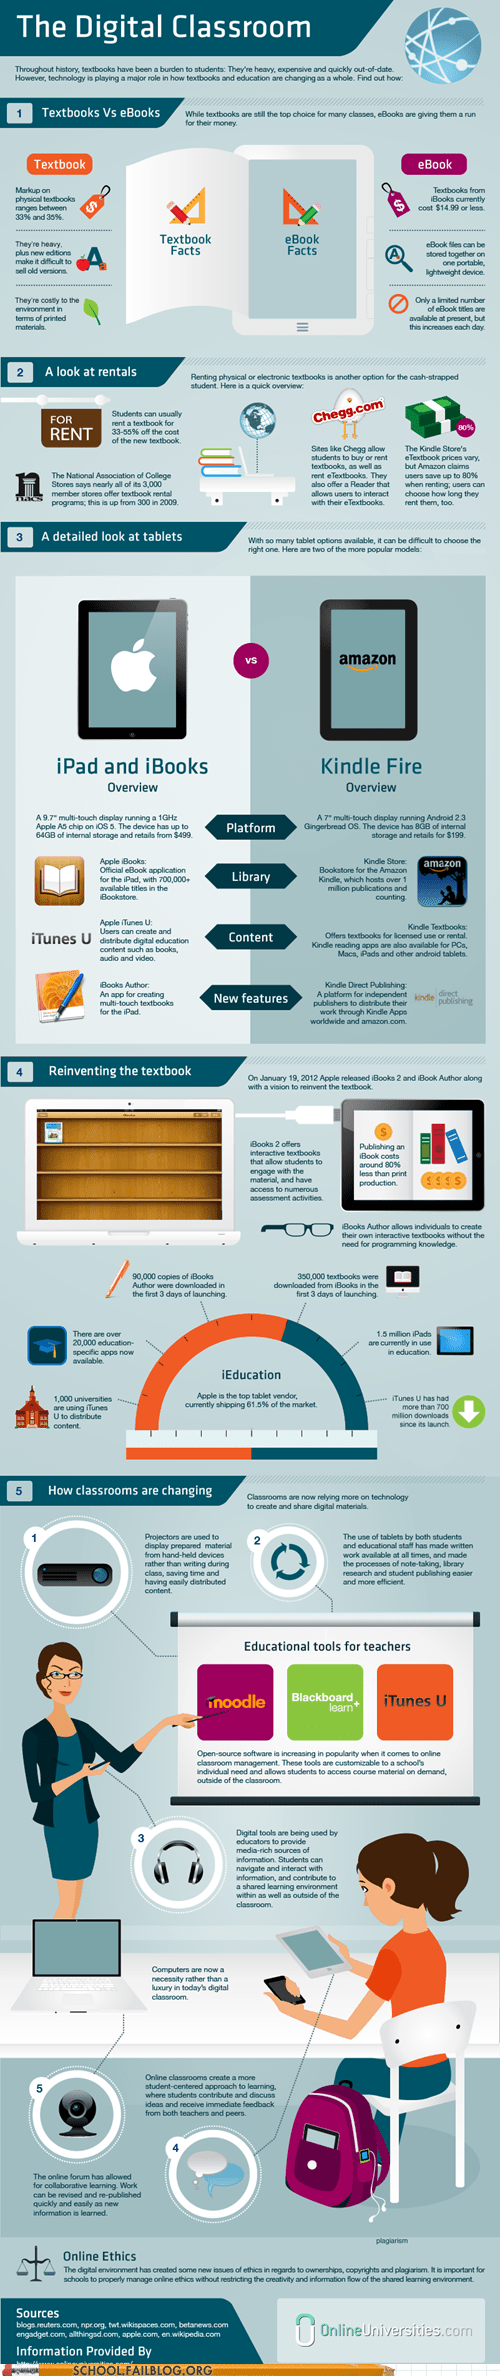 hack college,infographic,the digital classroom